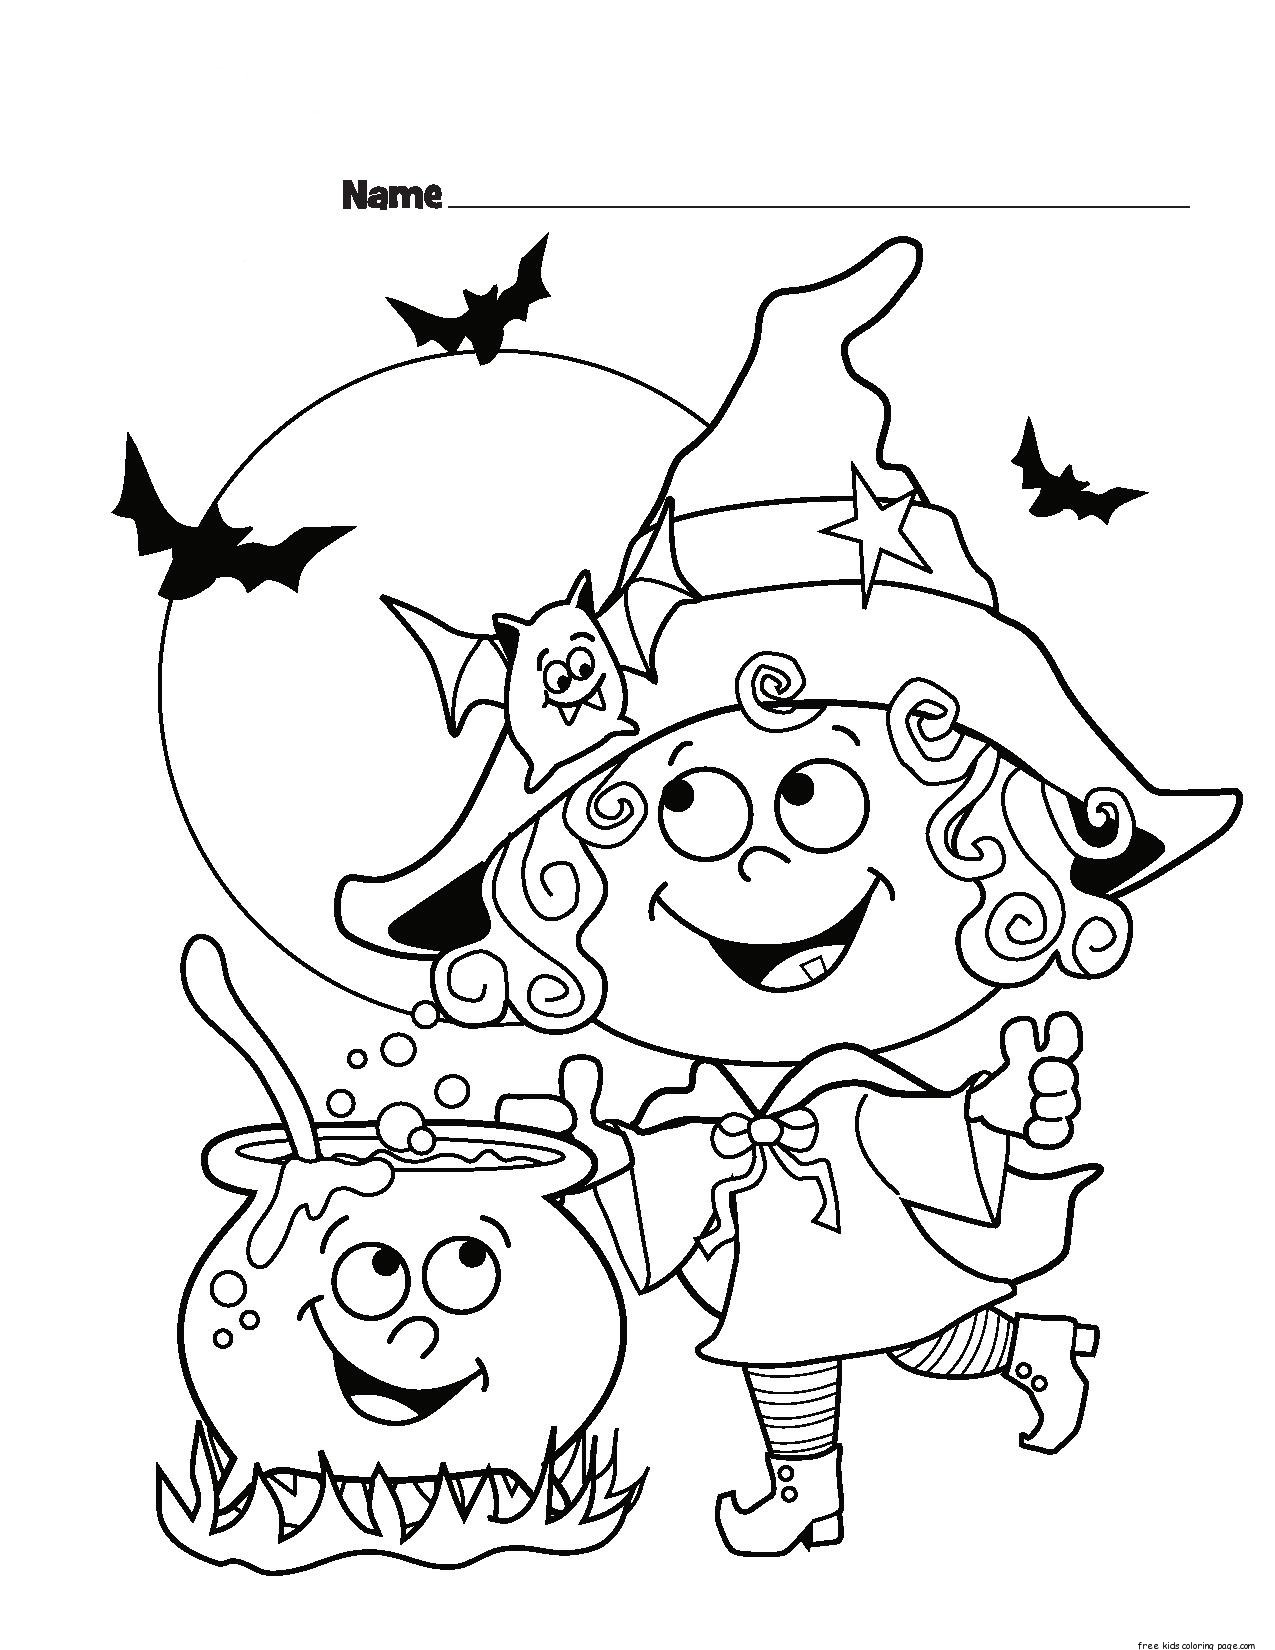 childrens halloween witch costumes coloring page for ...